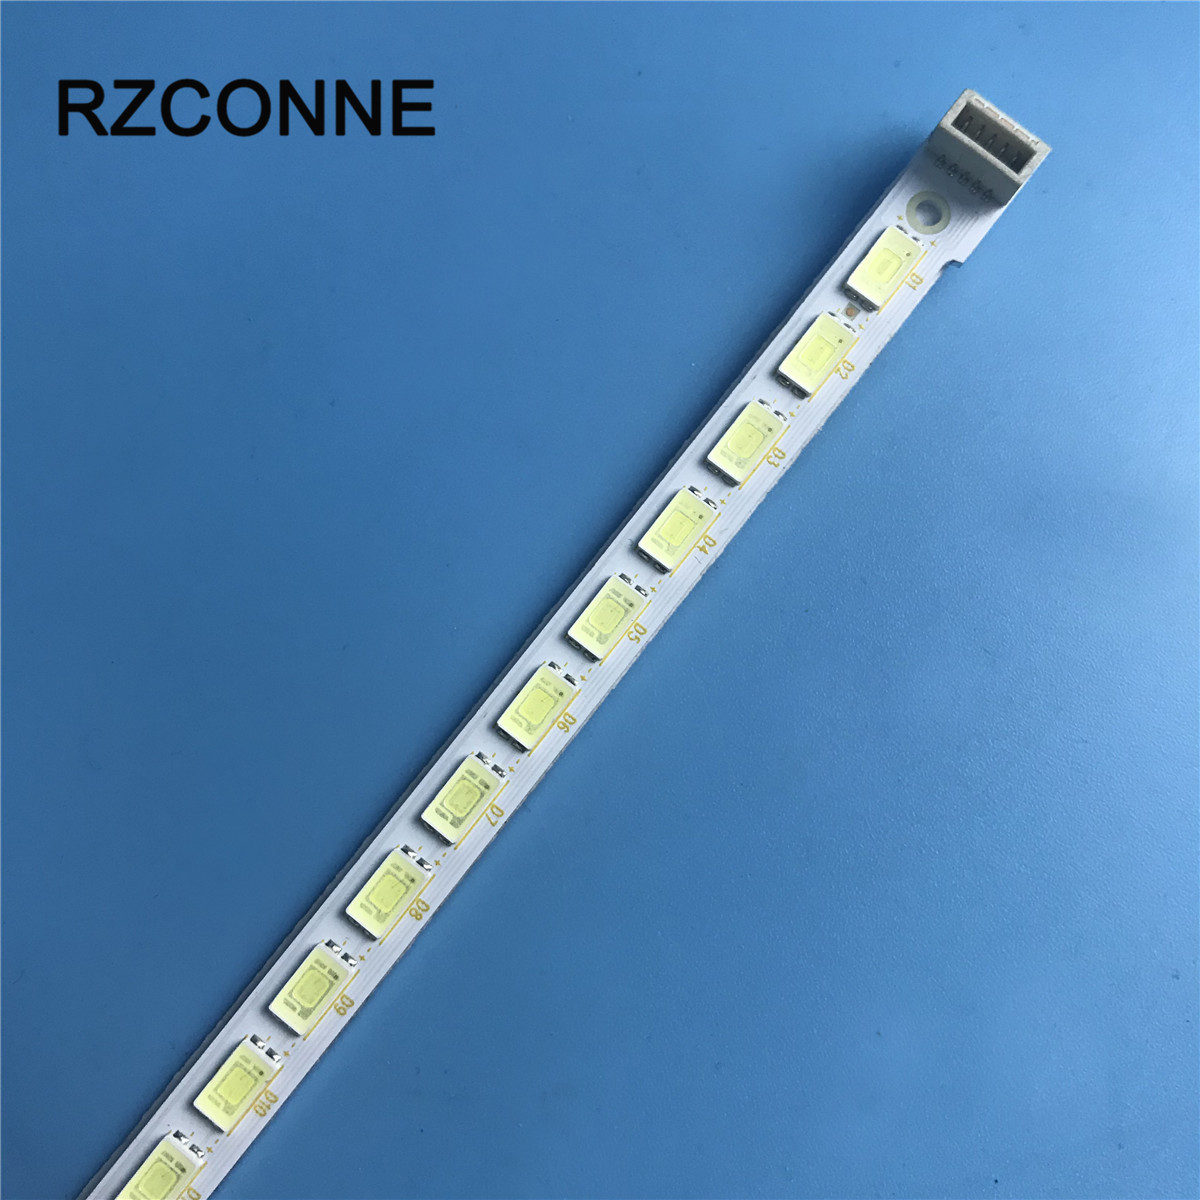 LED Backlight Lamp Strip For LG 32'' TV 73.32T21.002-2 32LT360C WL-3232EK 320TA0F V0 T320XVN01.1 ET20504 32LS3590 32LS350T